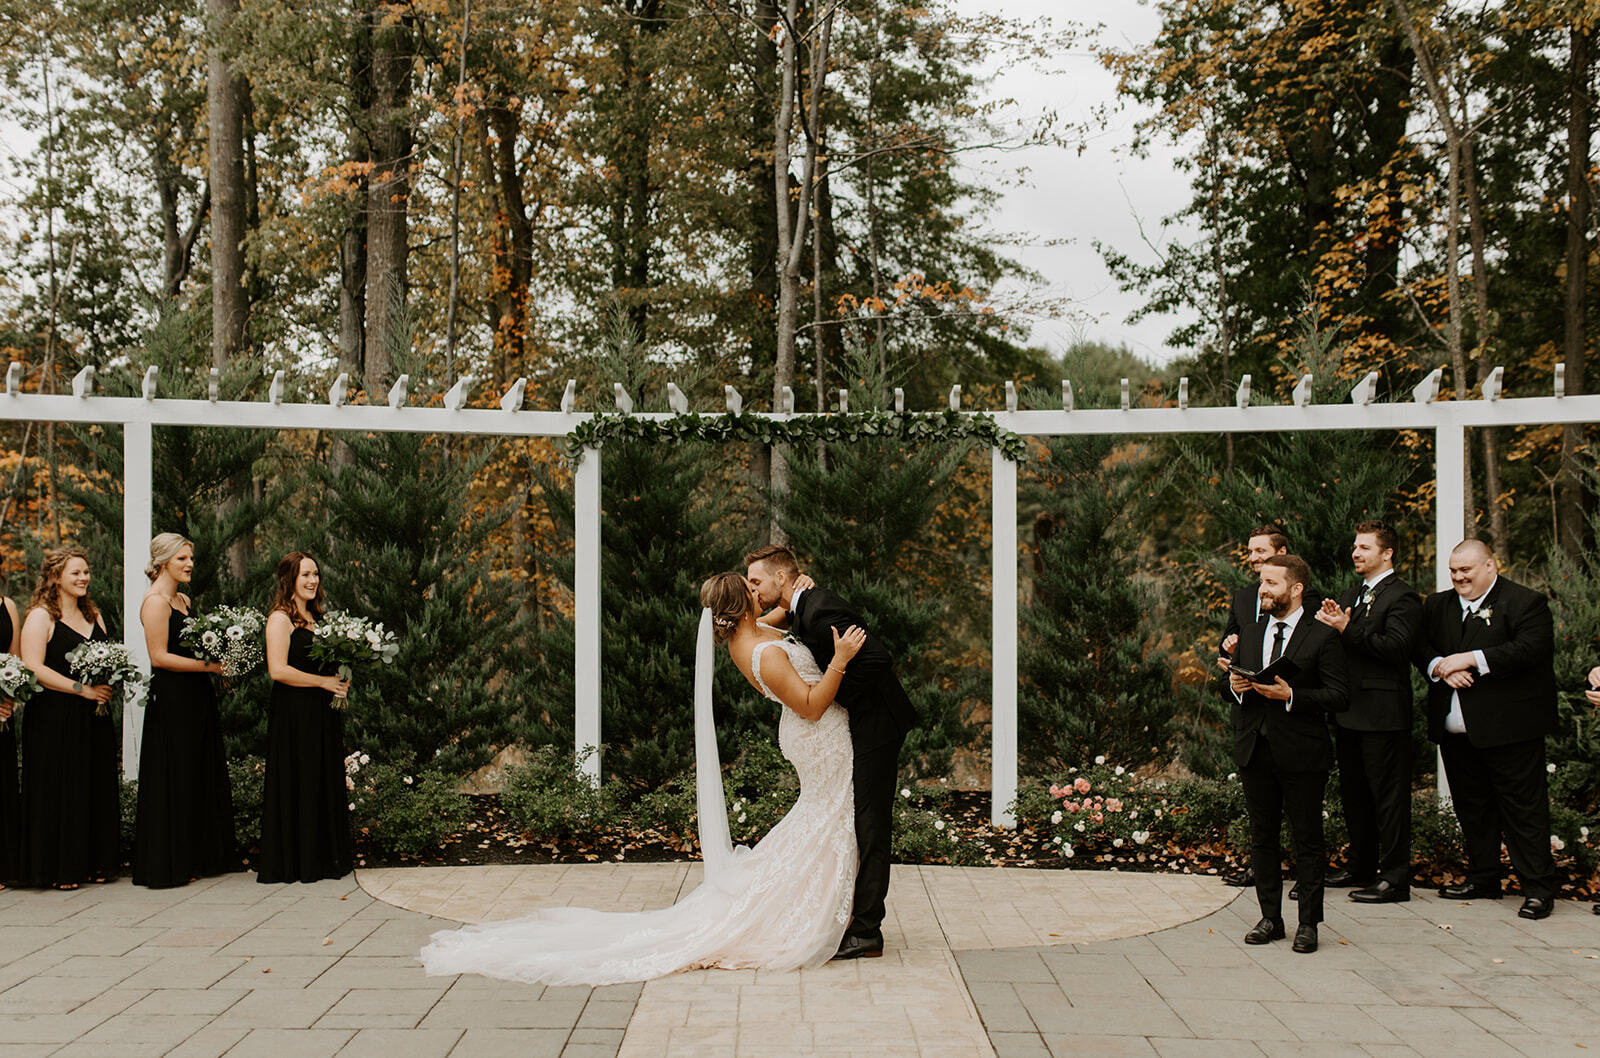 Finding your Dream Wedding Atmosphere